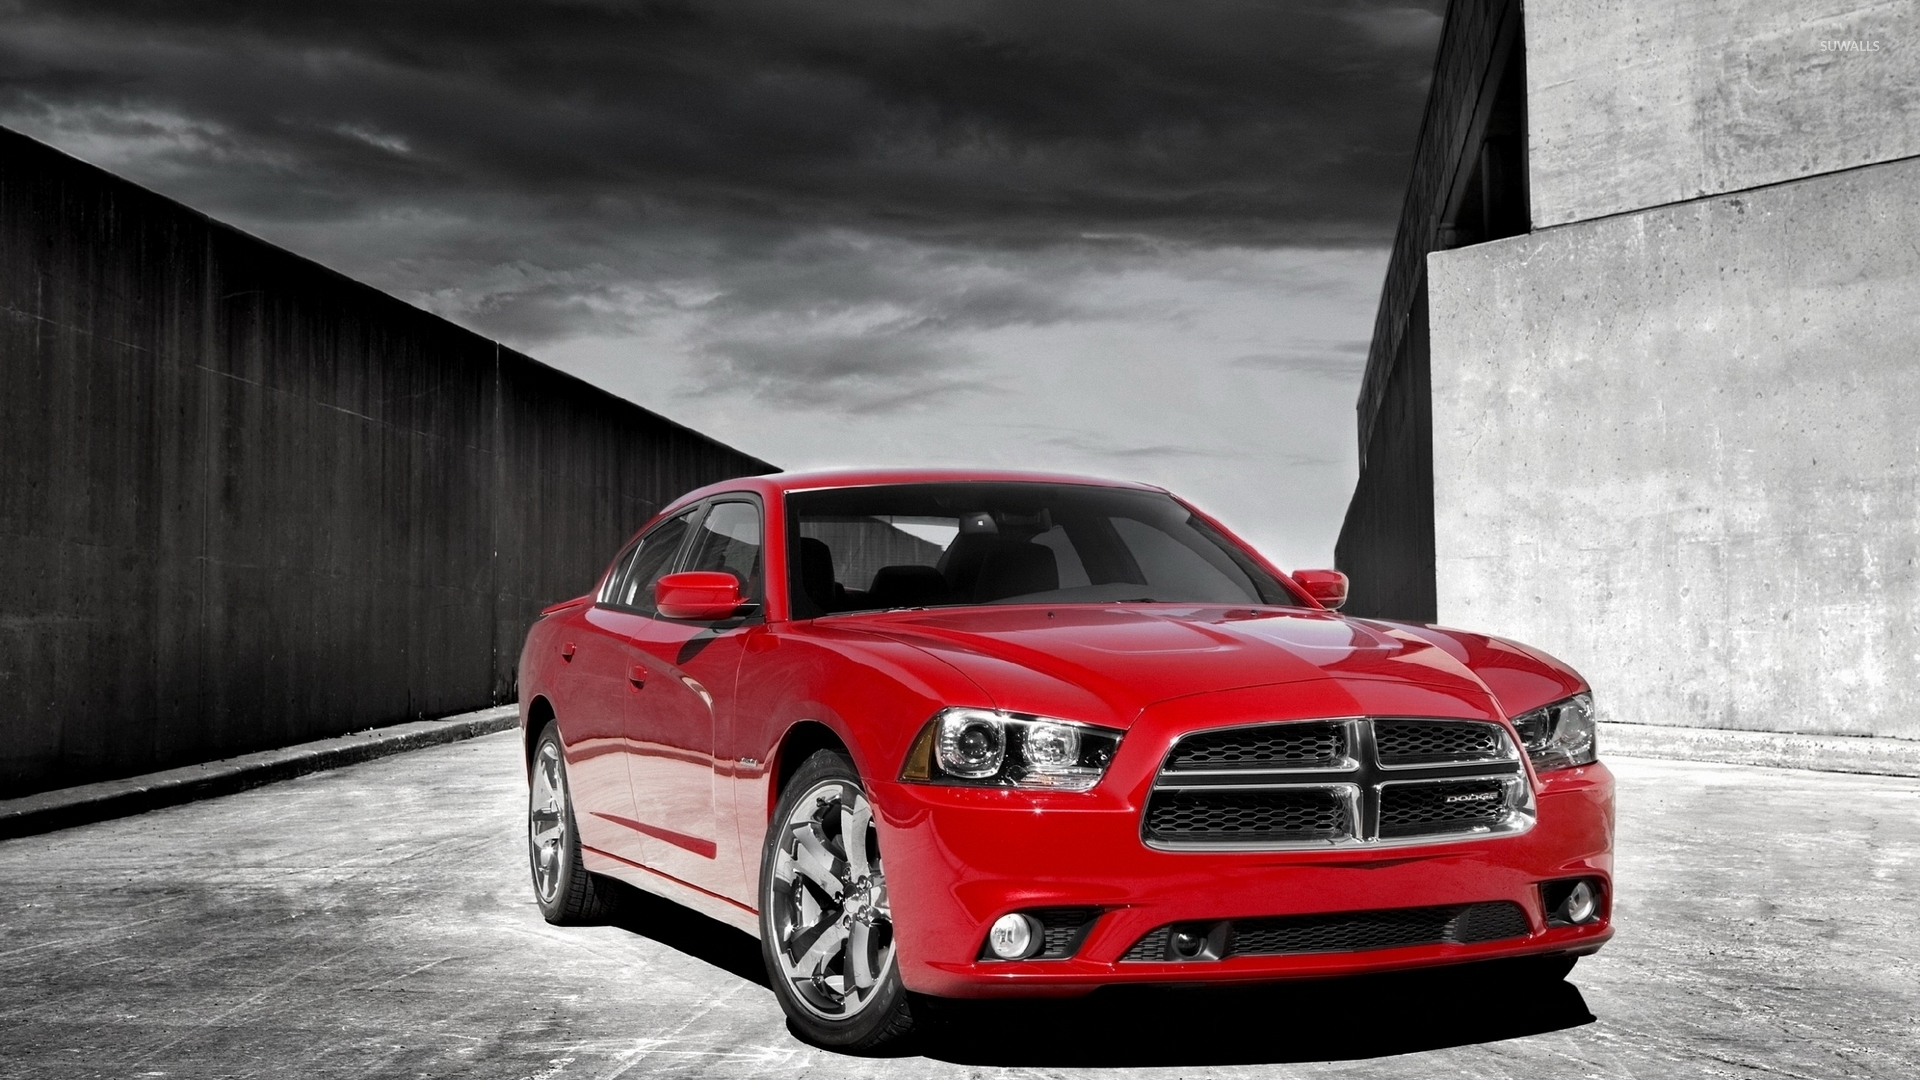 Front view of a 2012 Dodge Charger